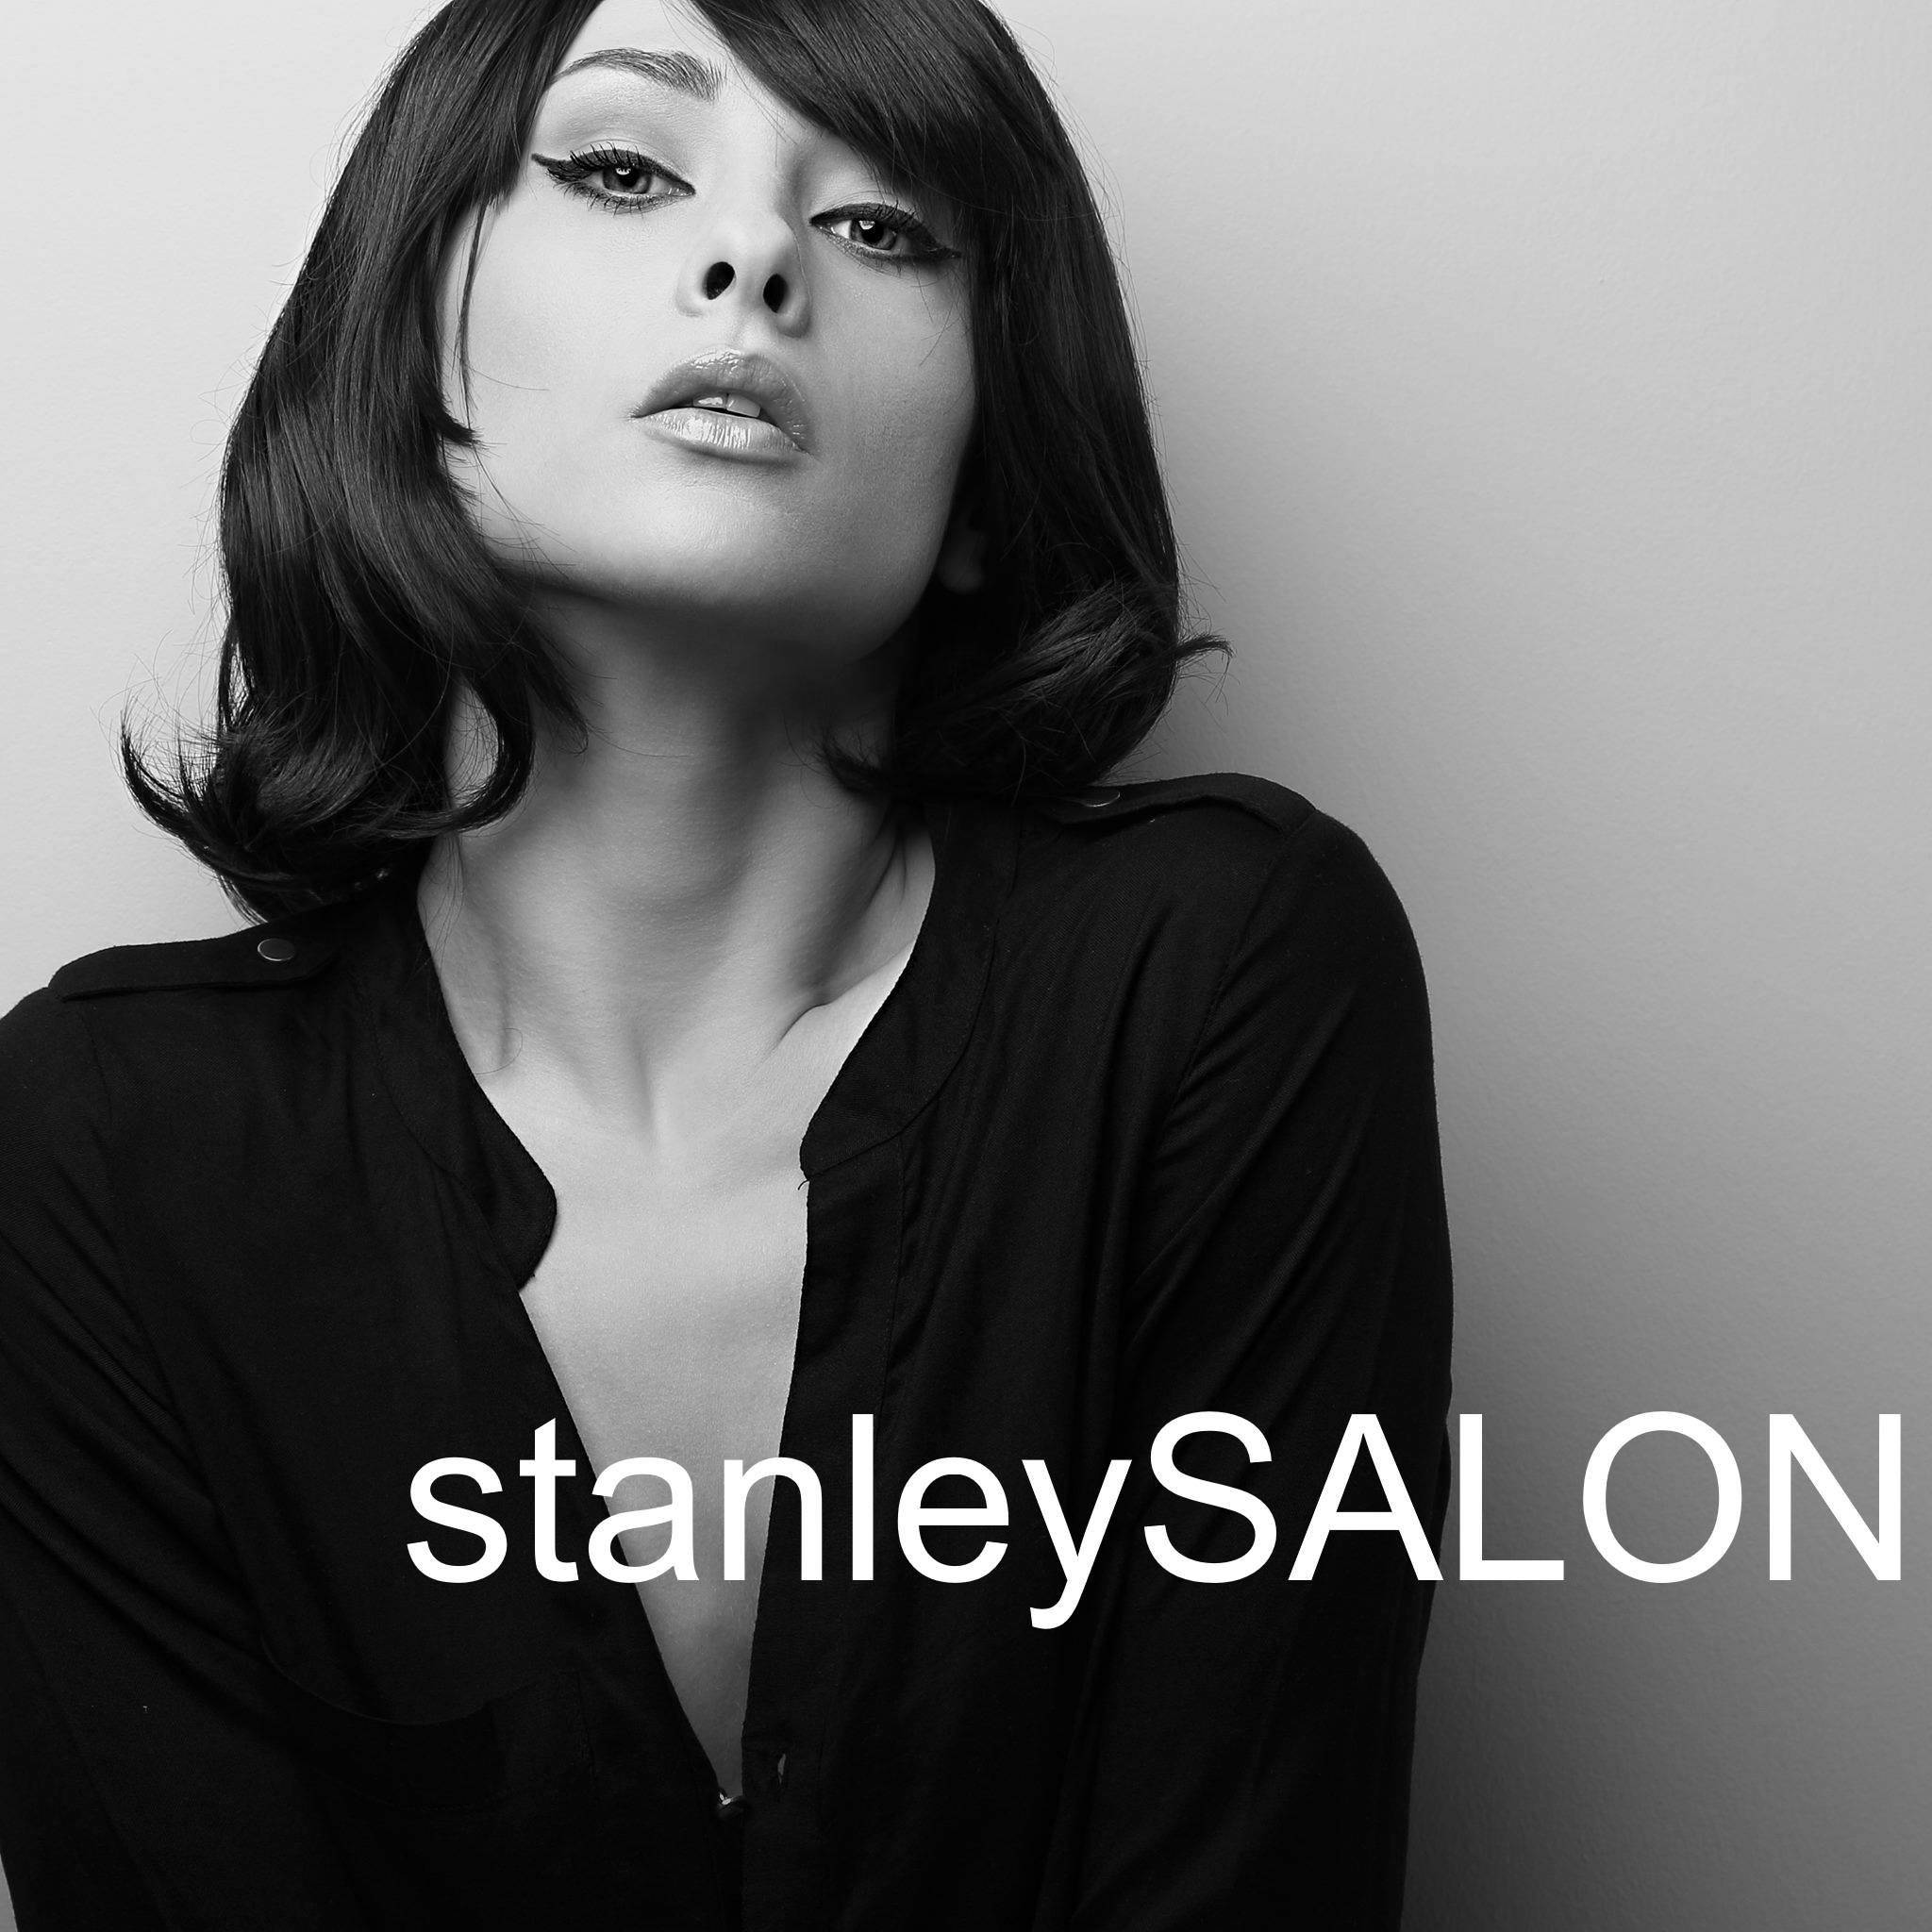 Stanley Salon - Frederick, MD - Beauty Salons & Hair Care